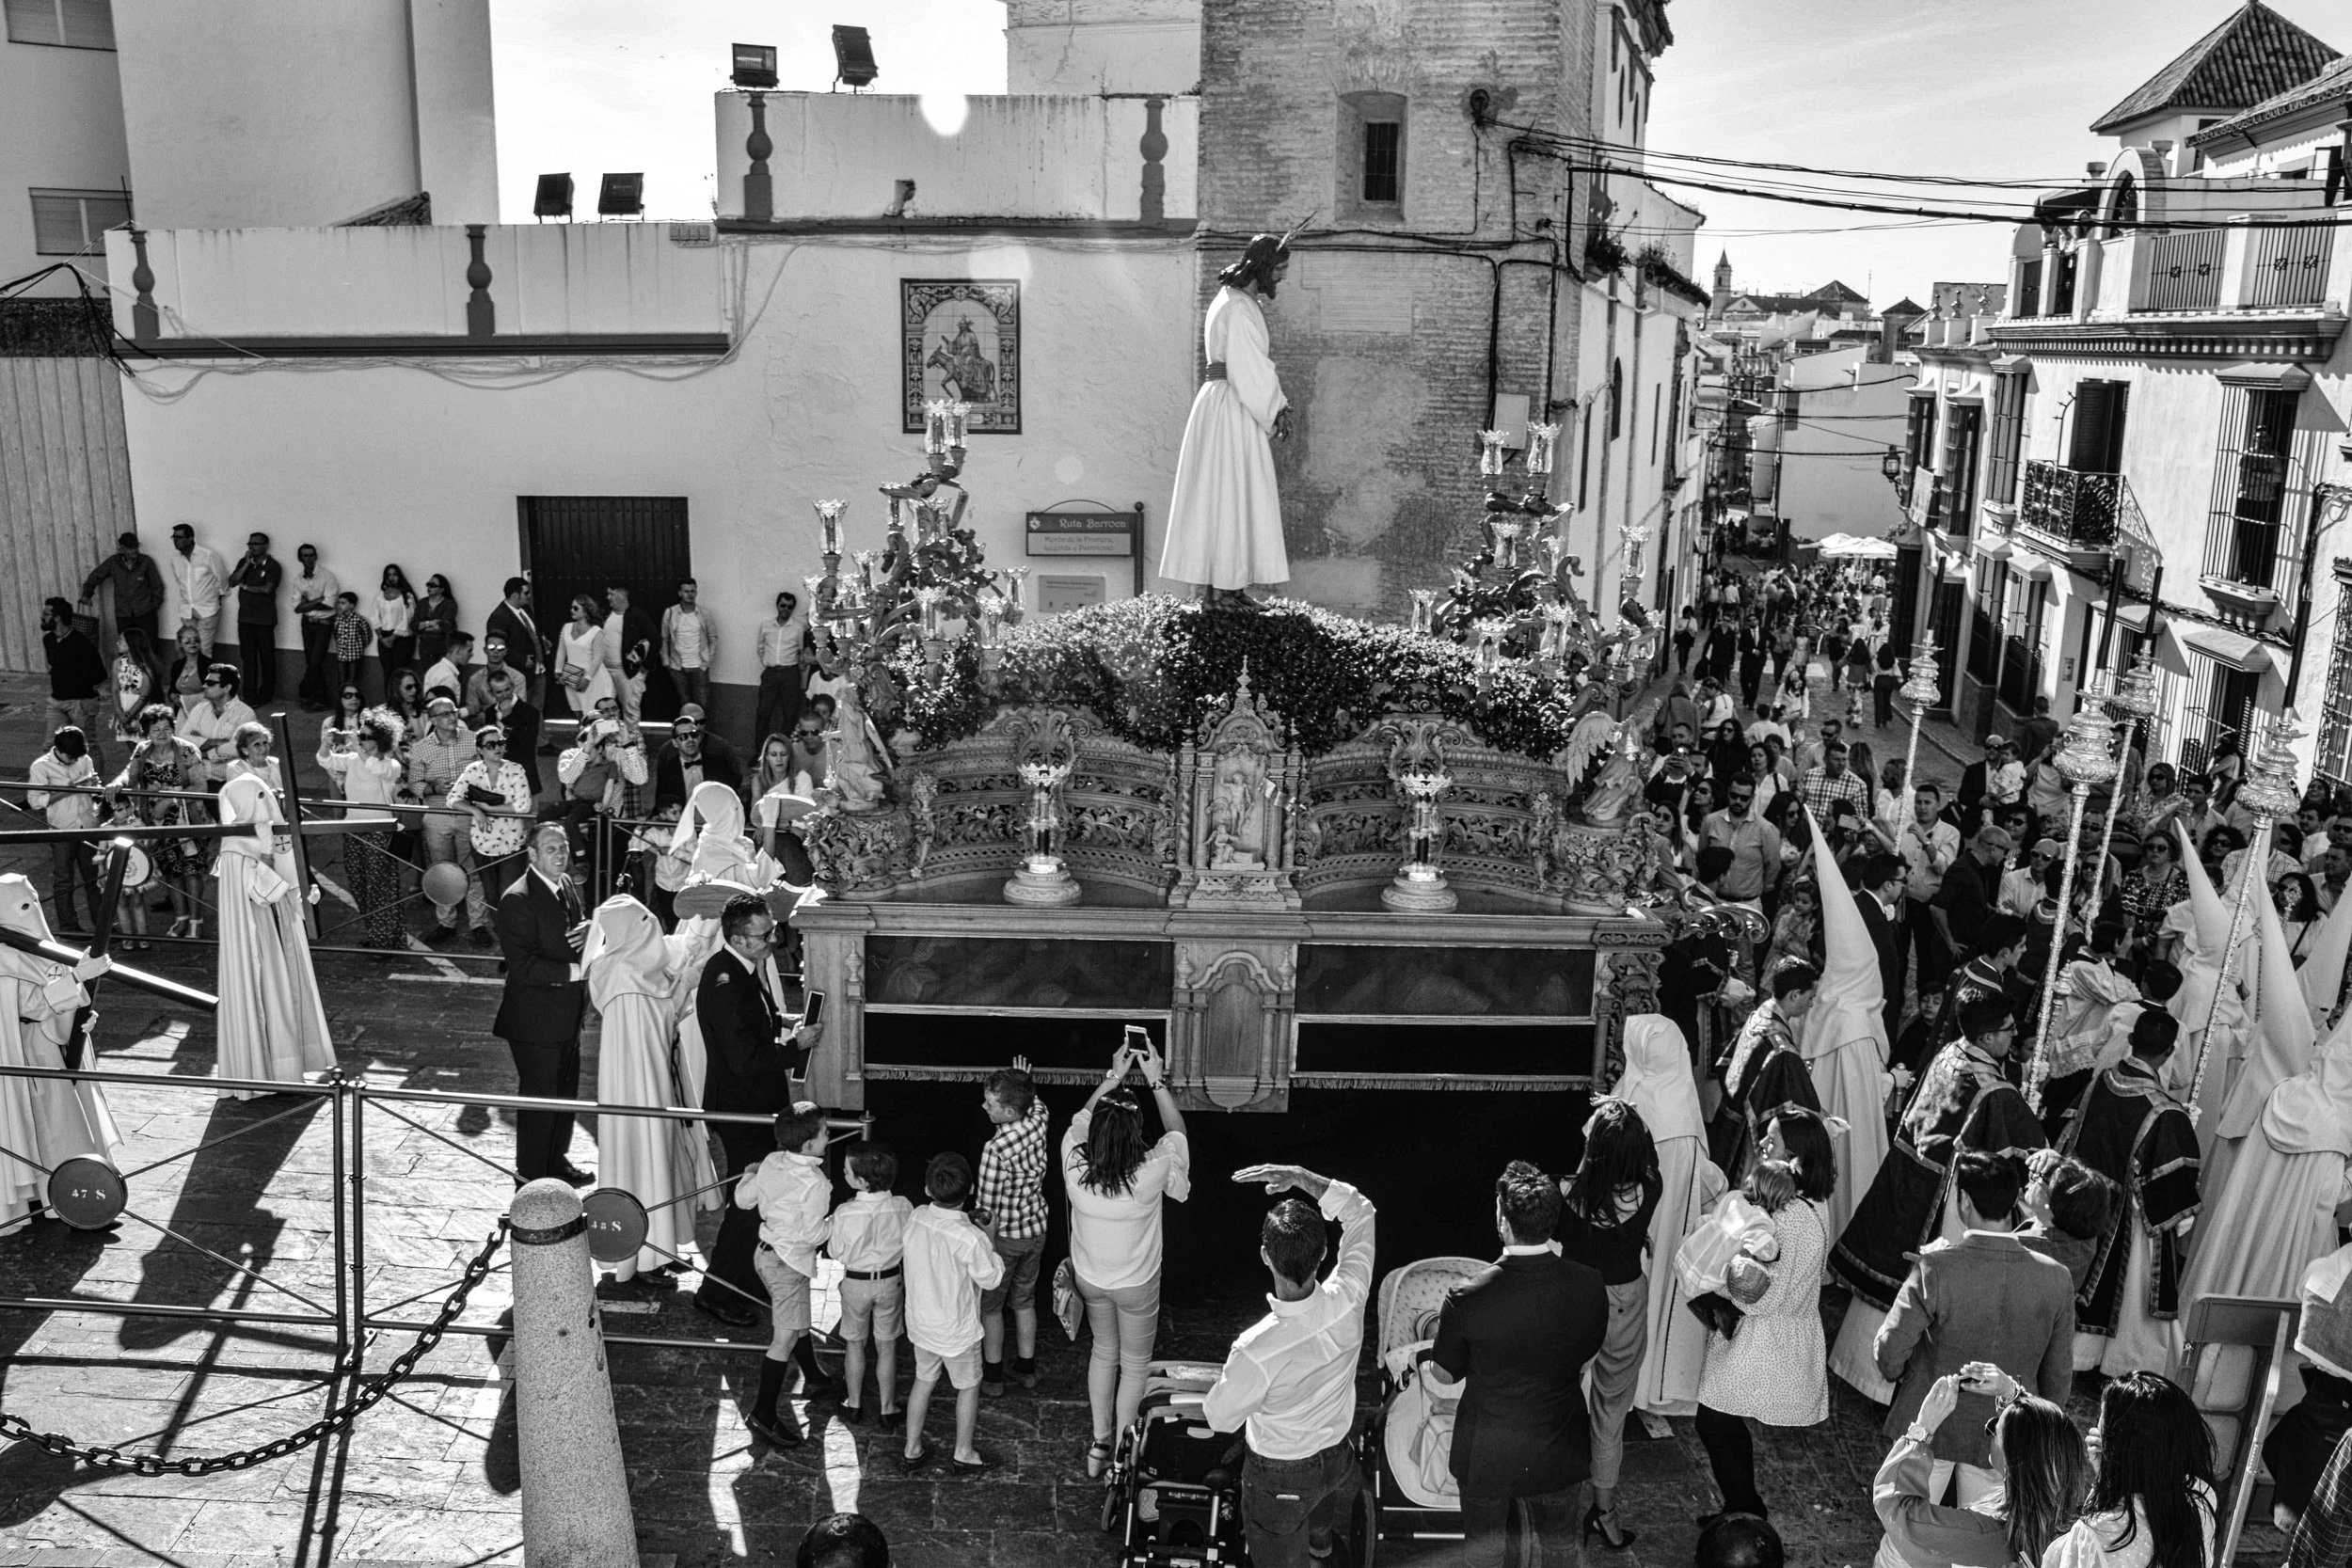 The parade of Jesus #4 - re-edit.JPG